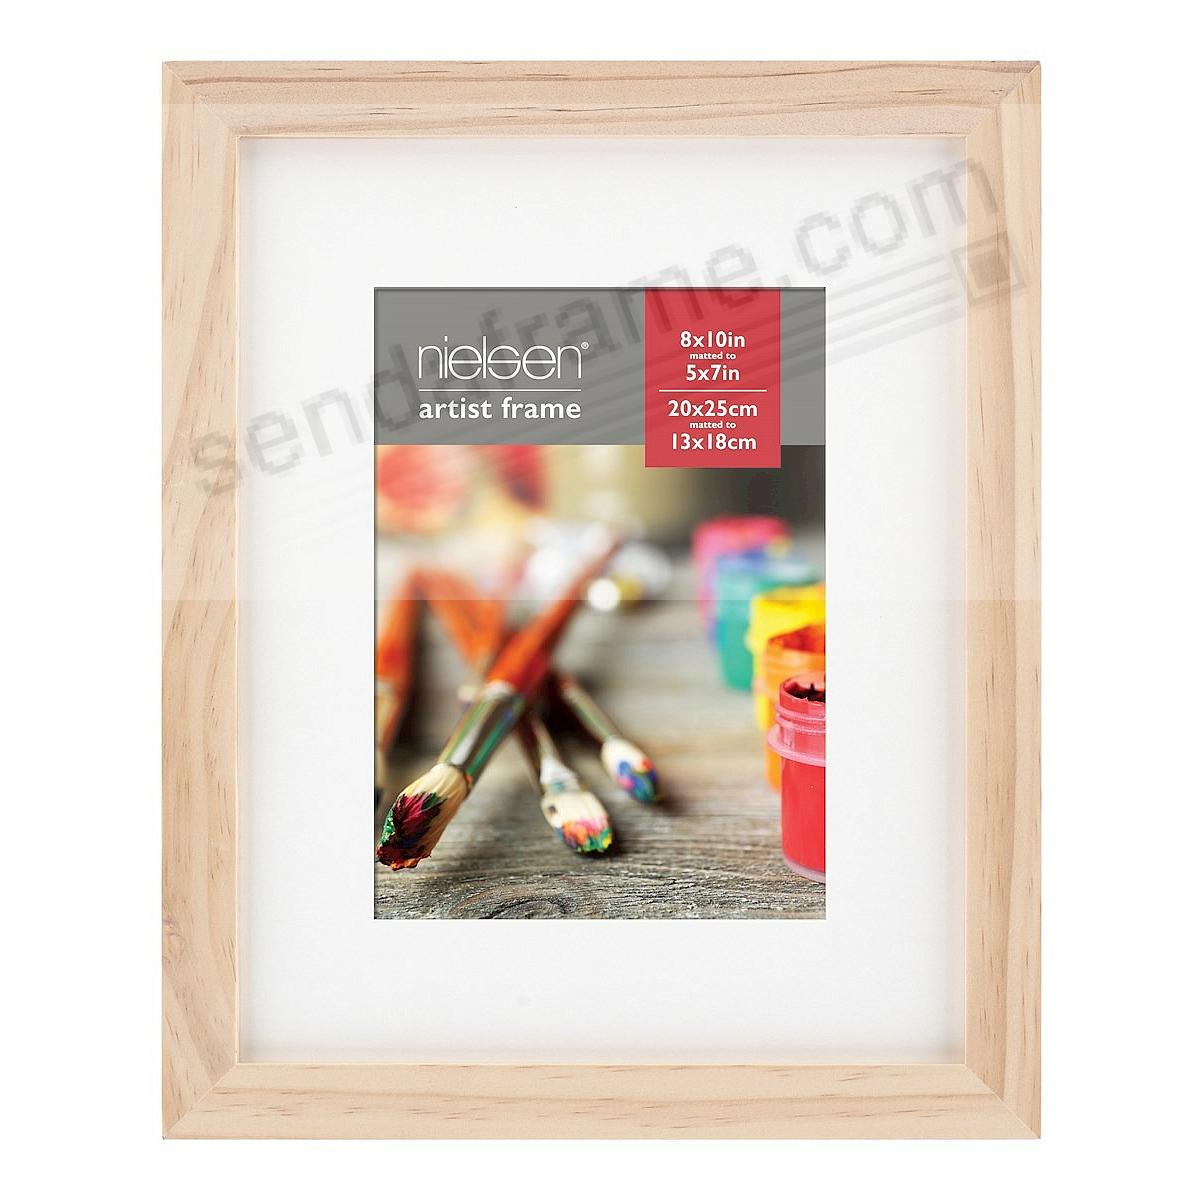 Ash Natural GALLERY-CANVAS DEPTH matted wood frame 8x10/5x7 by Nielsen-Bainbridge®